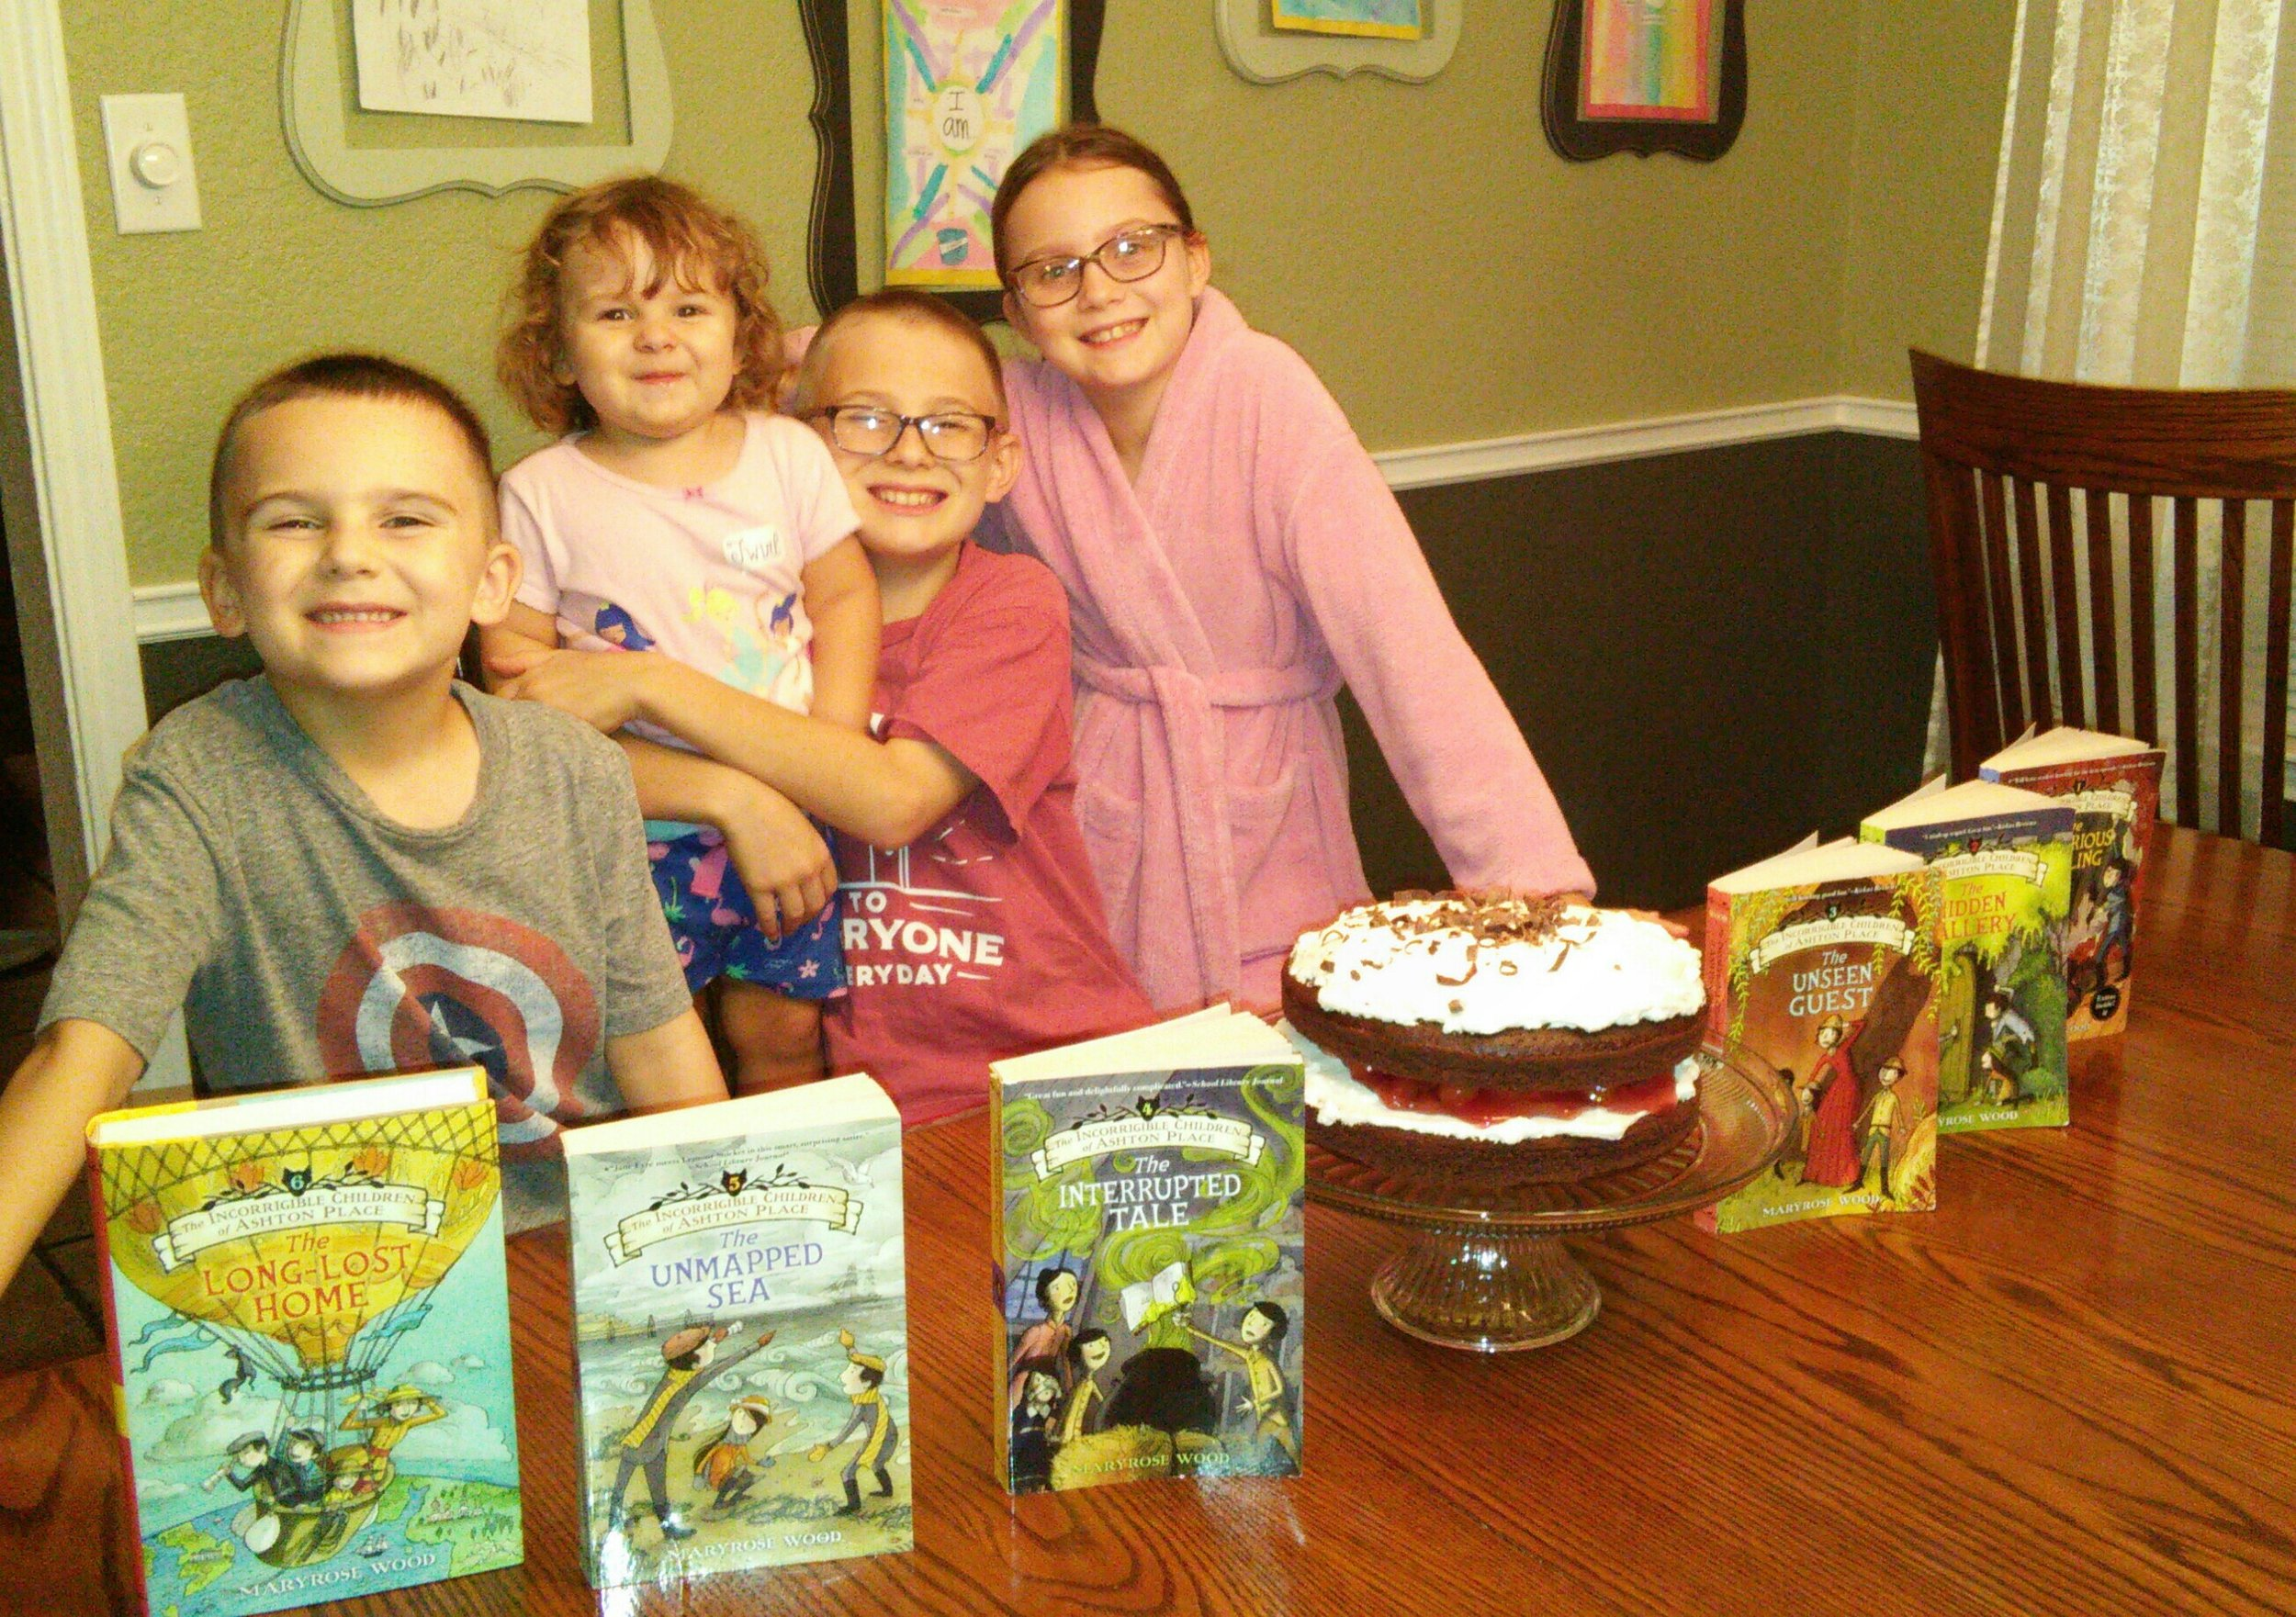 CAKE DAY! - Cake day, cake day! The best day of the year! These beautiful Incorrigible readers from Round Rock, Texas celebrated finishing the series by making a Black Forest cake! So much loveawoo to this family! xoxo